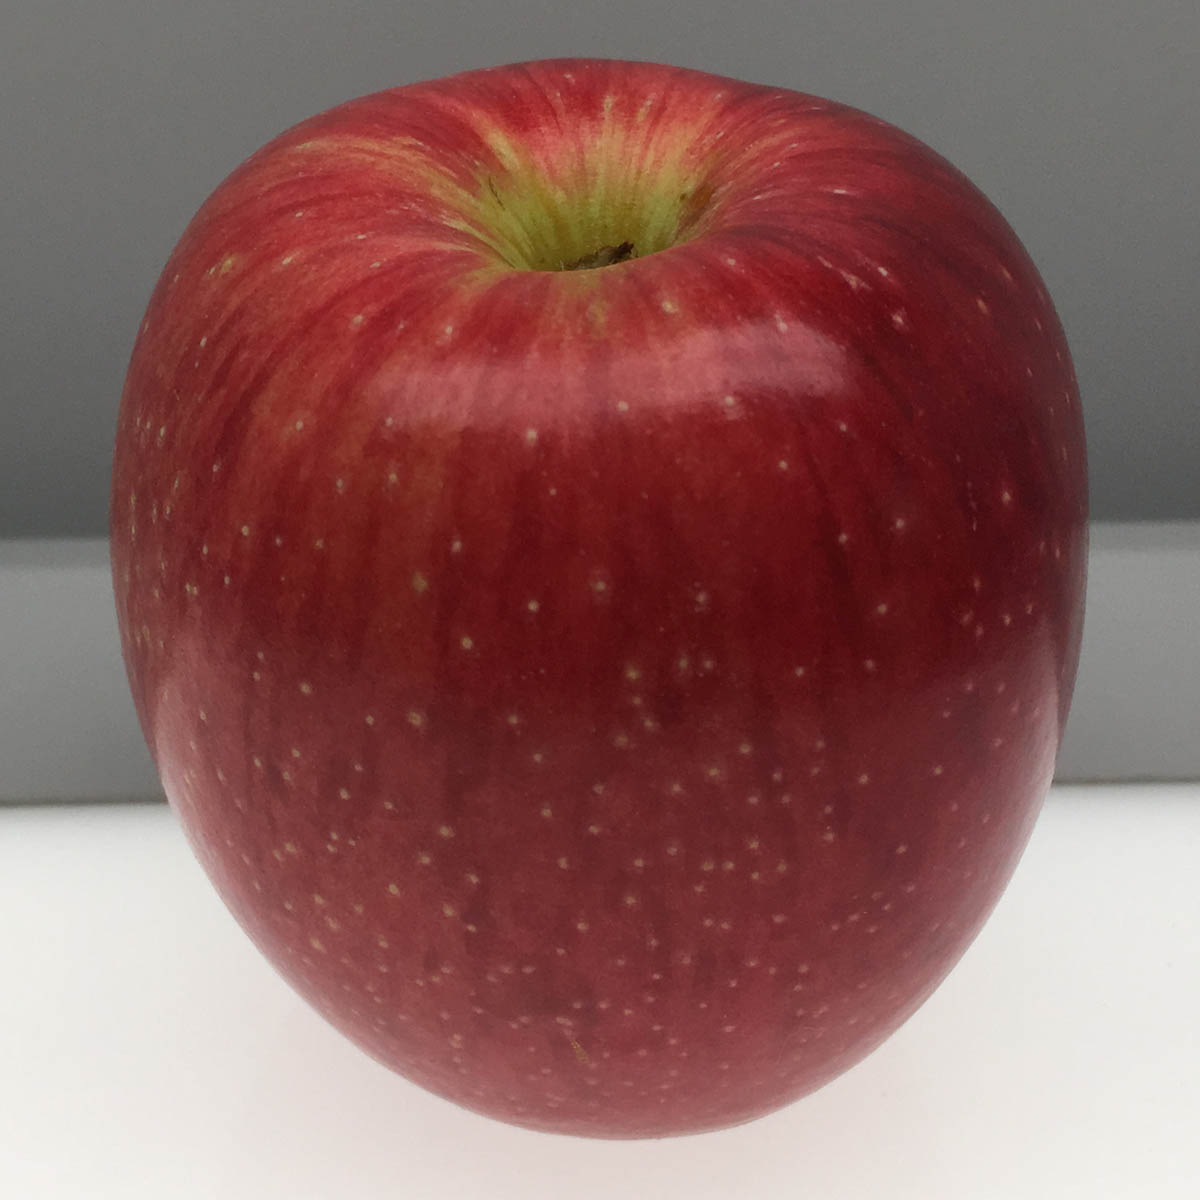 Ramsdell Sweet apple